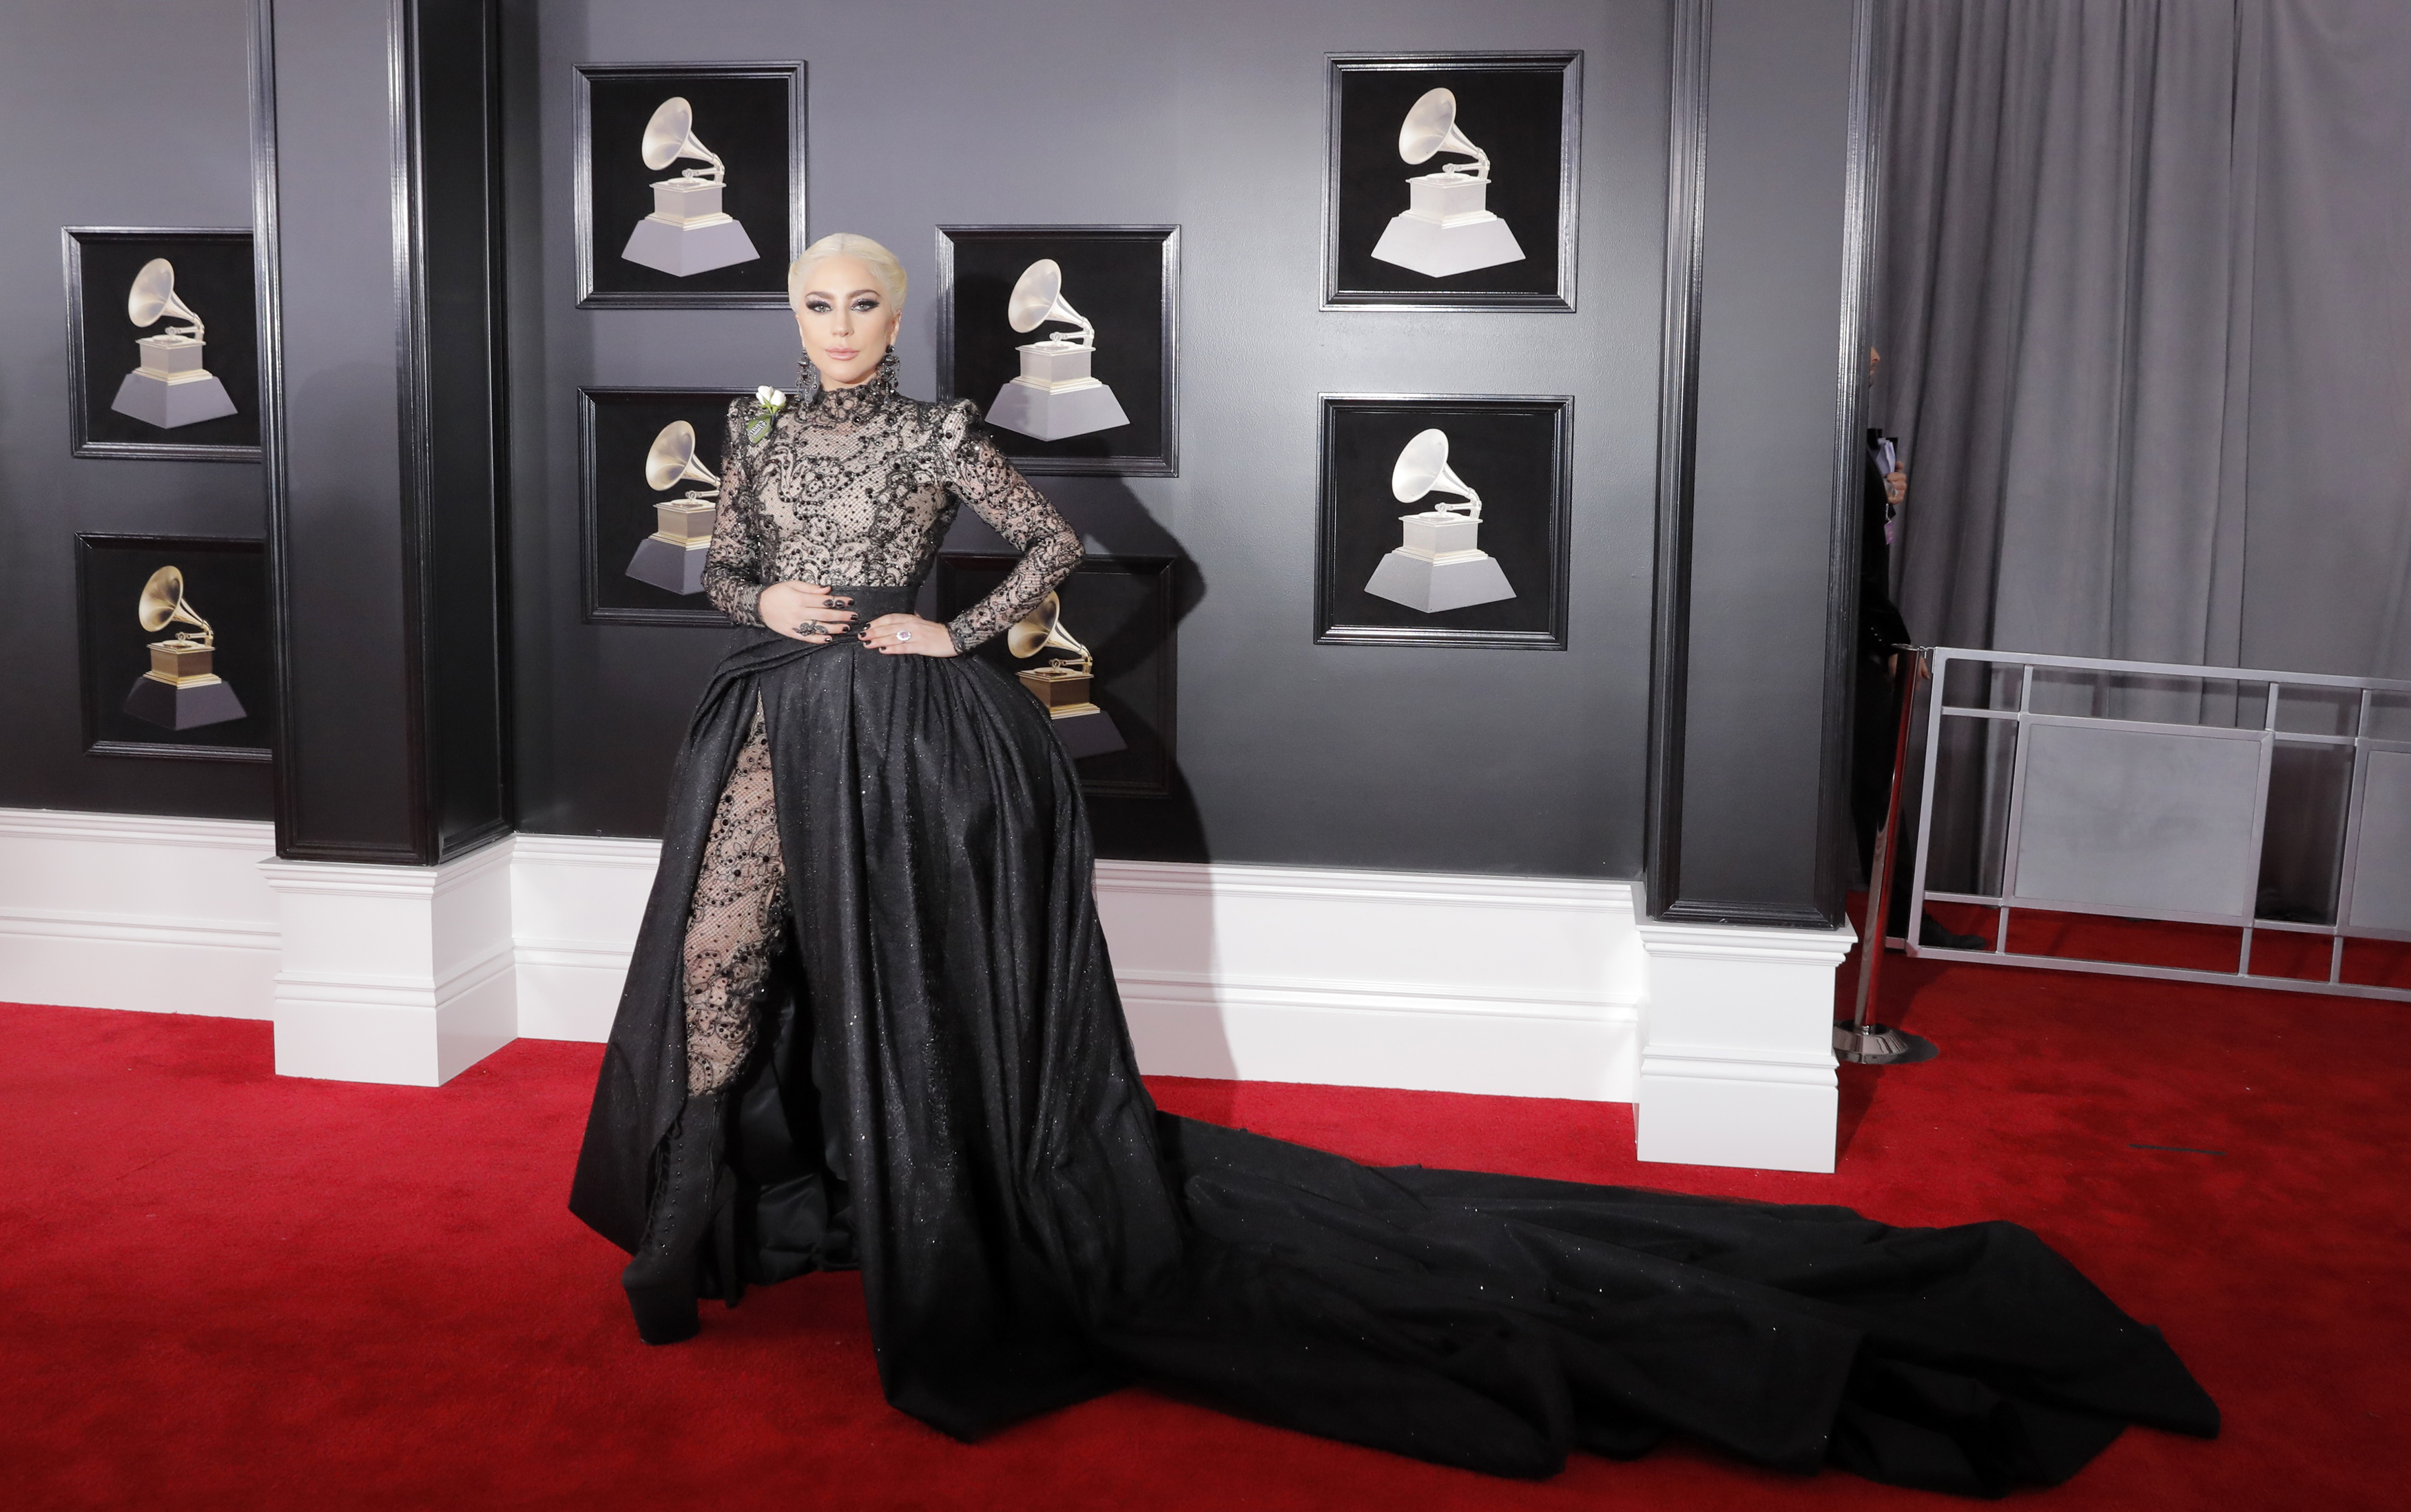 60th Annual Grammy Awards  Arrivals  New York, U.S., 28/01/2018  Lady Gaga. REUTERS/Andrew Kelly - HP1EE1S1PSNPV